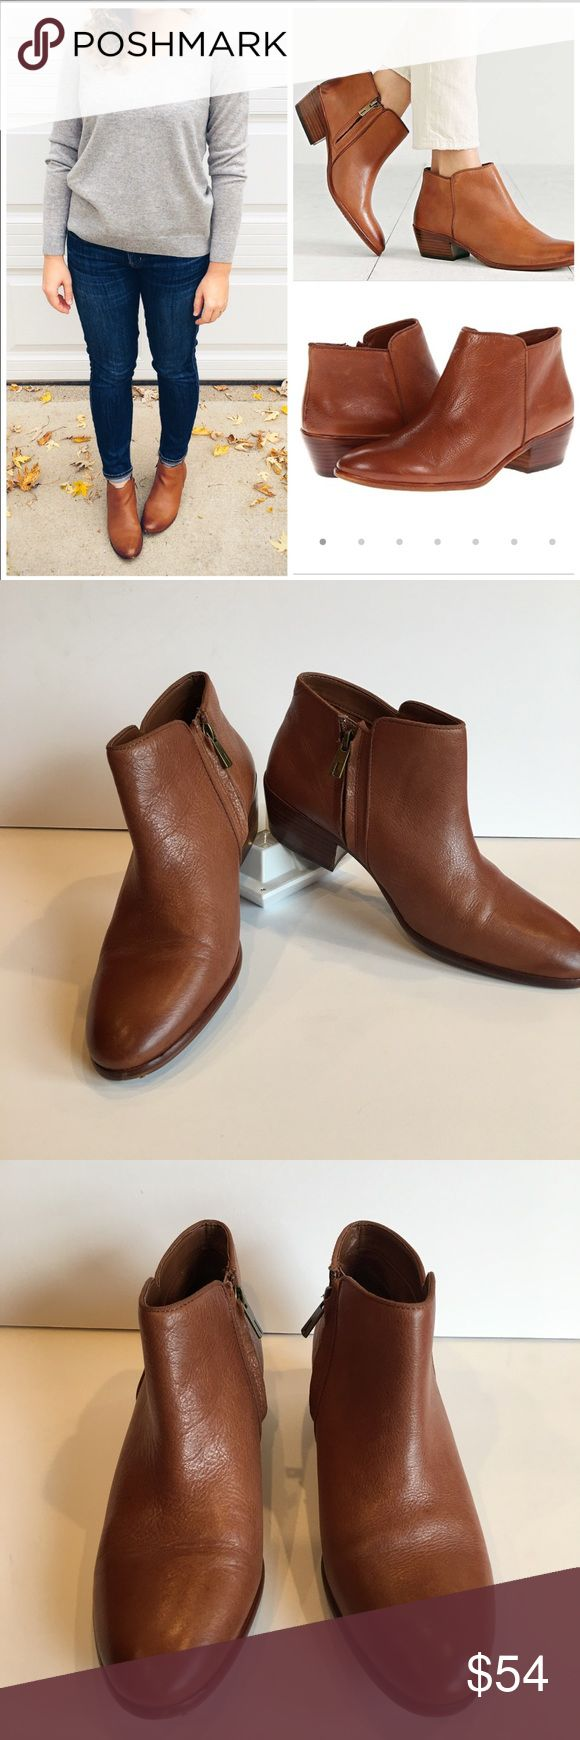 Sam Edelman Petty Saddle Ankle Boots Booties Sam Edelman Petty Ankle Boots Booties Size: 10 Material: Smooth leather and man made Condition: Some minimal wear as depicted on sole and outer, small nick in back of right heel- may be reparable Measurements: Heel height: 1.75 in, boot shaft 3.25 in Color: Saddle which is a rich cognac tan Features: inside zip closure, low stacked heel  These shoes are so comfortable and go with everything. Would look great with every style from a sun dress to…